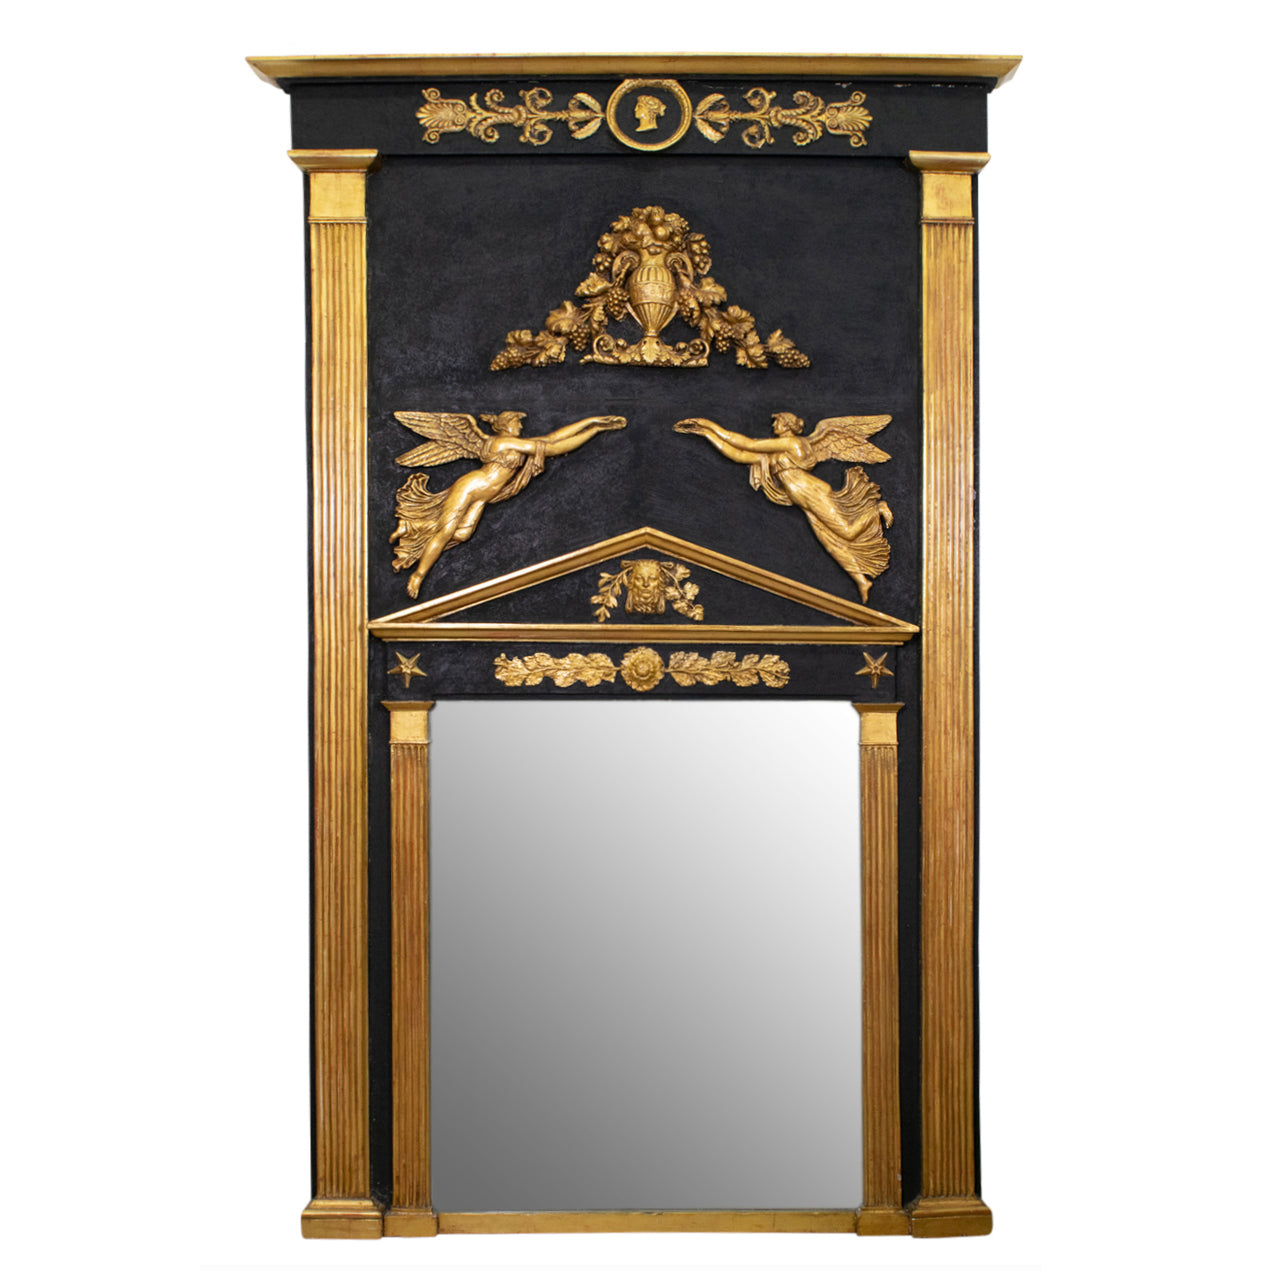 A French Empire Gilt and Ebonised Trumeau Mirror